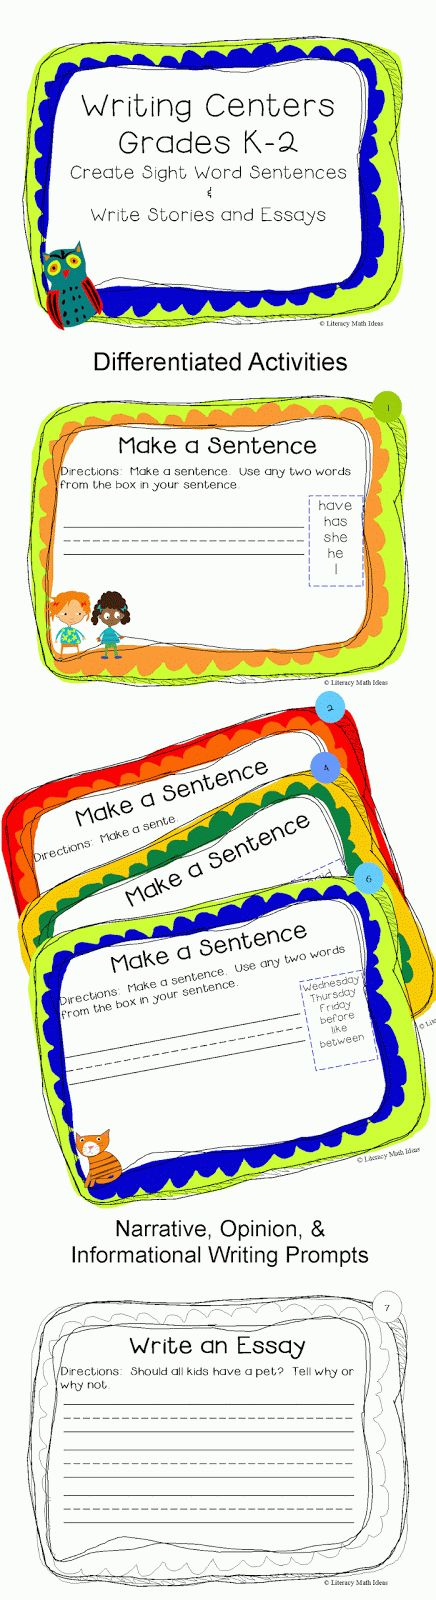 42 Differentiated Writing Activities-Choose from sight word sentence writing for new writers and narrative, opinion, and informational text writing prompts for more established writers. $